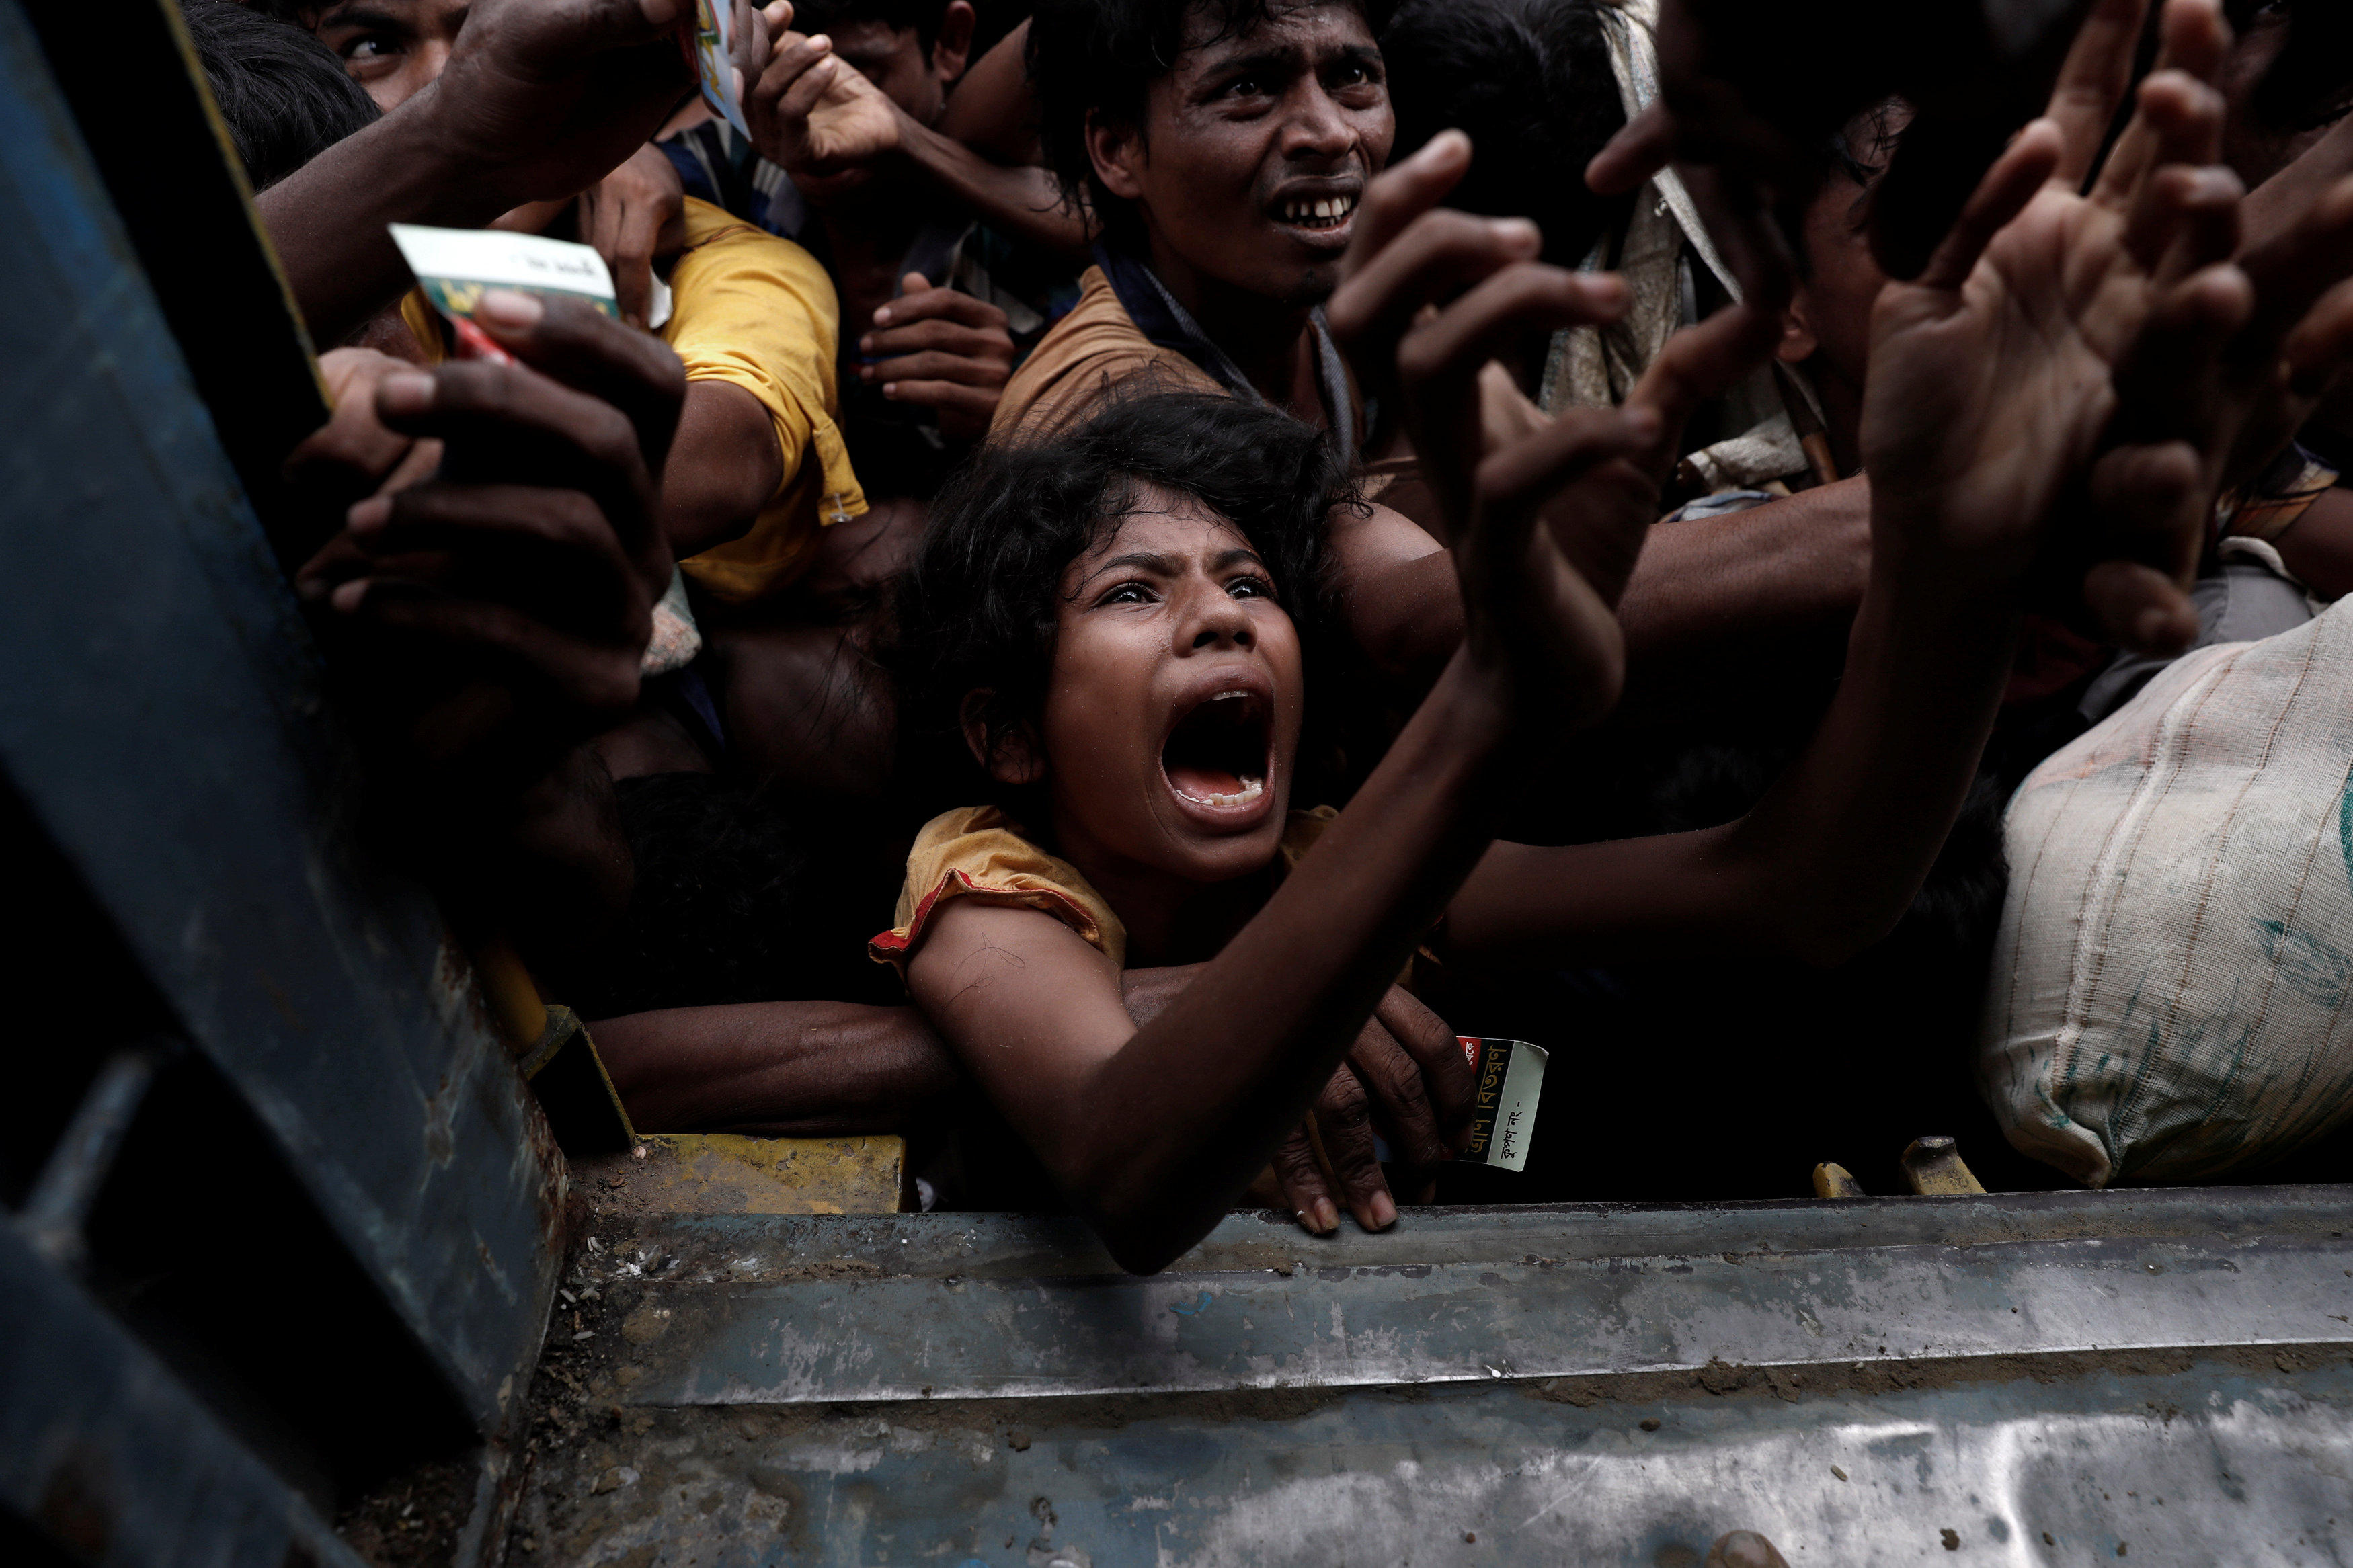 UN official: Rohingya exodus